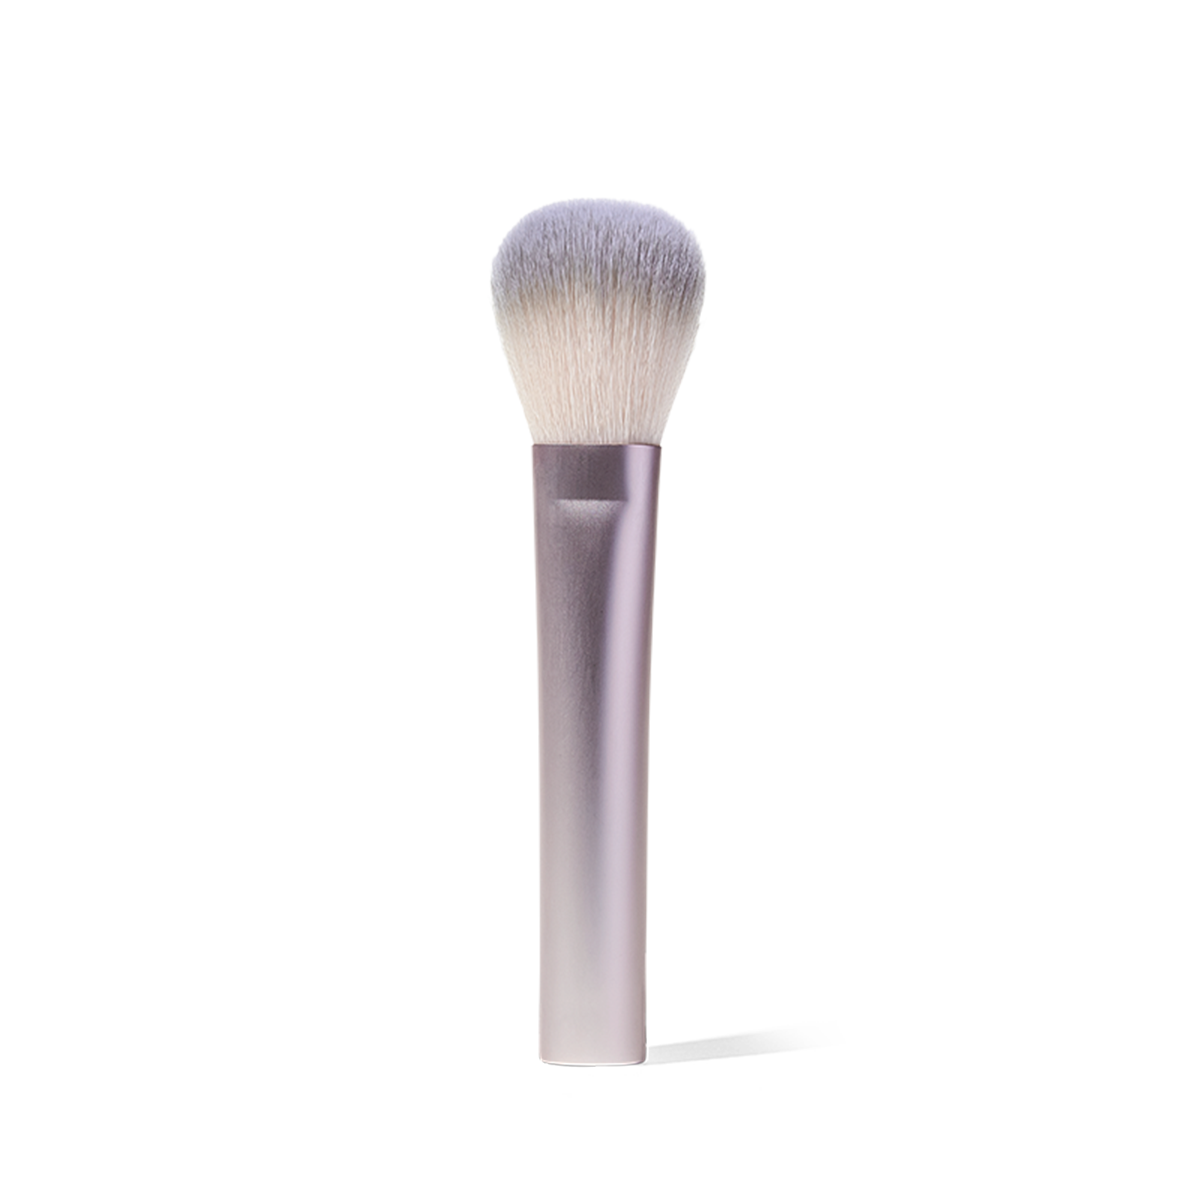 Glossier Wowder Brush, Makeup brush with high-grade, high-resistance, ultrasoft synthetic bristles delivers a real-skin finish